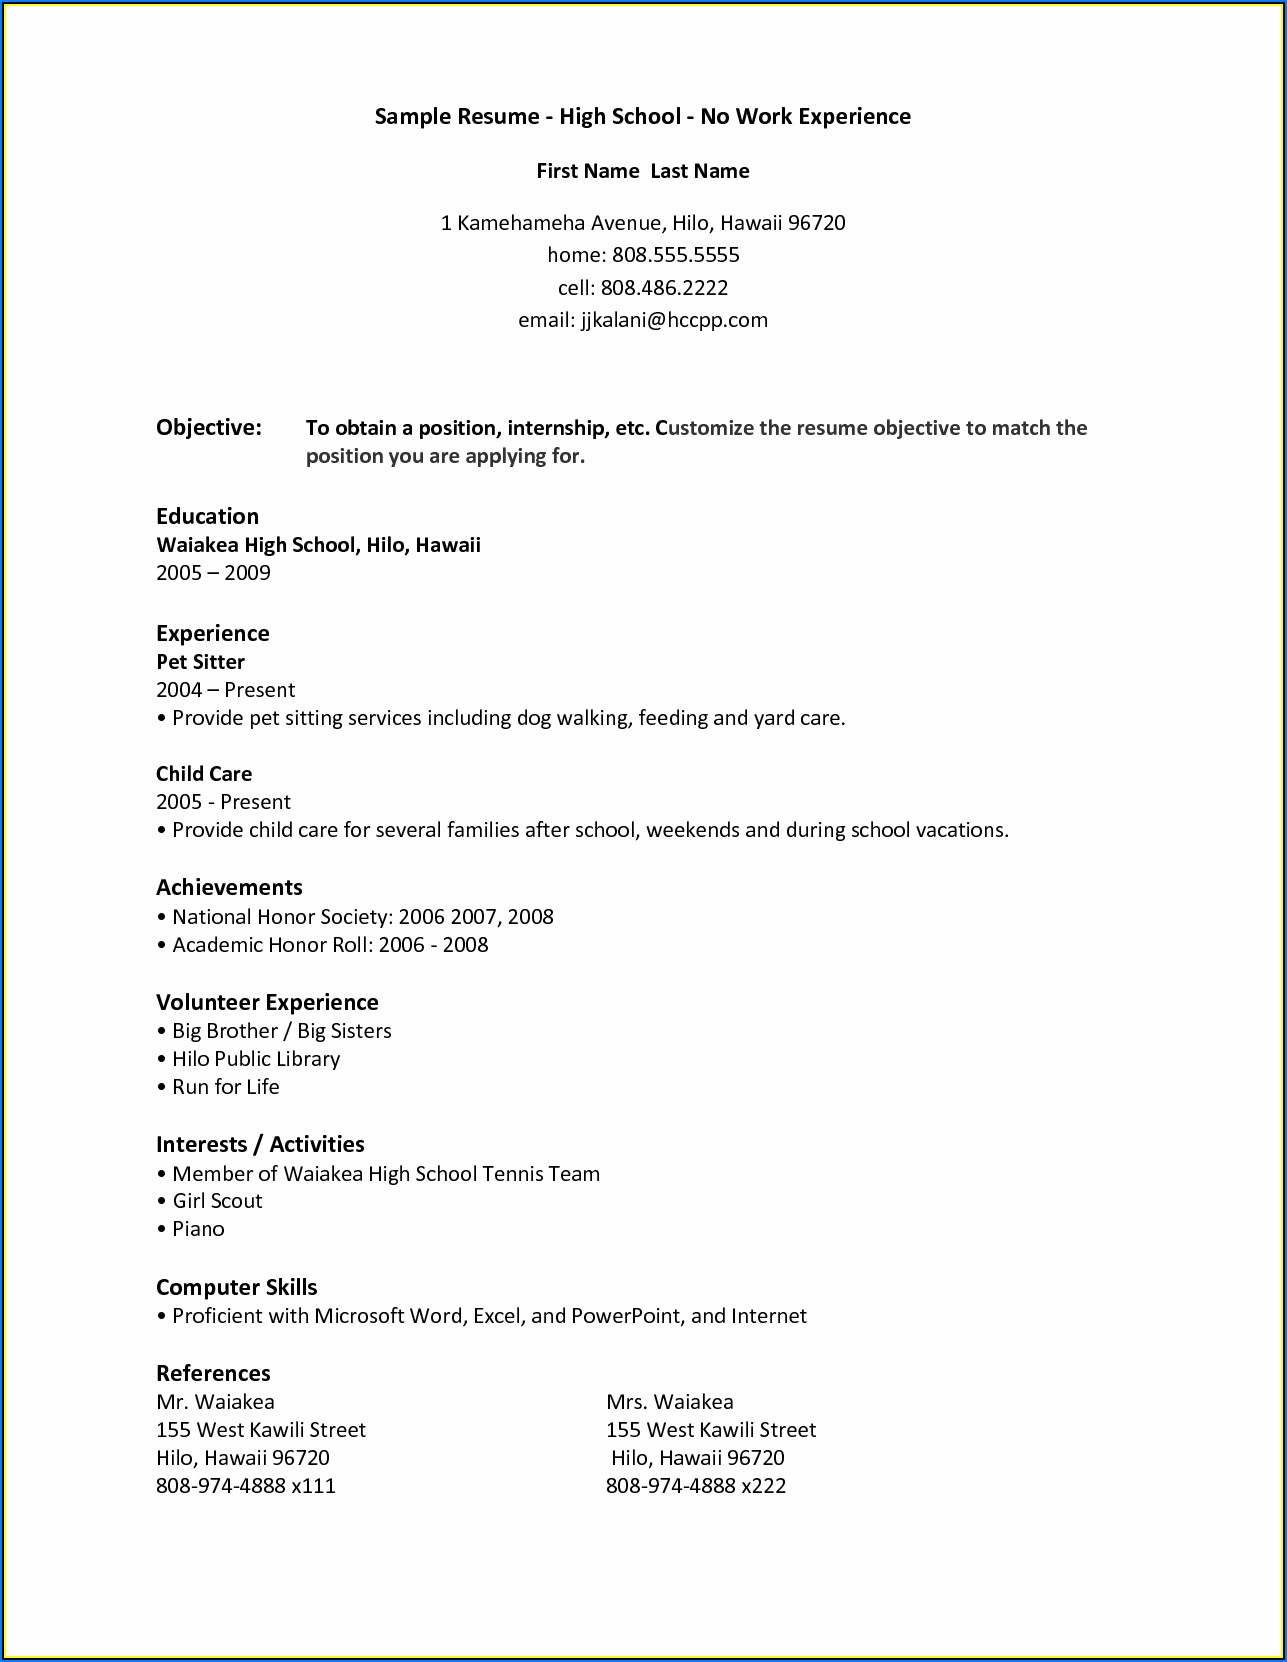 Resume Templates For Students In High School With No Experience